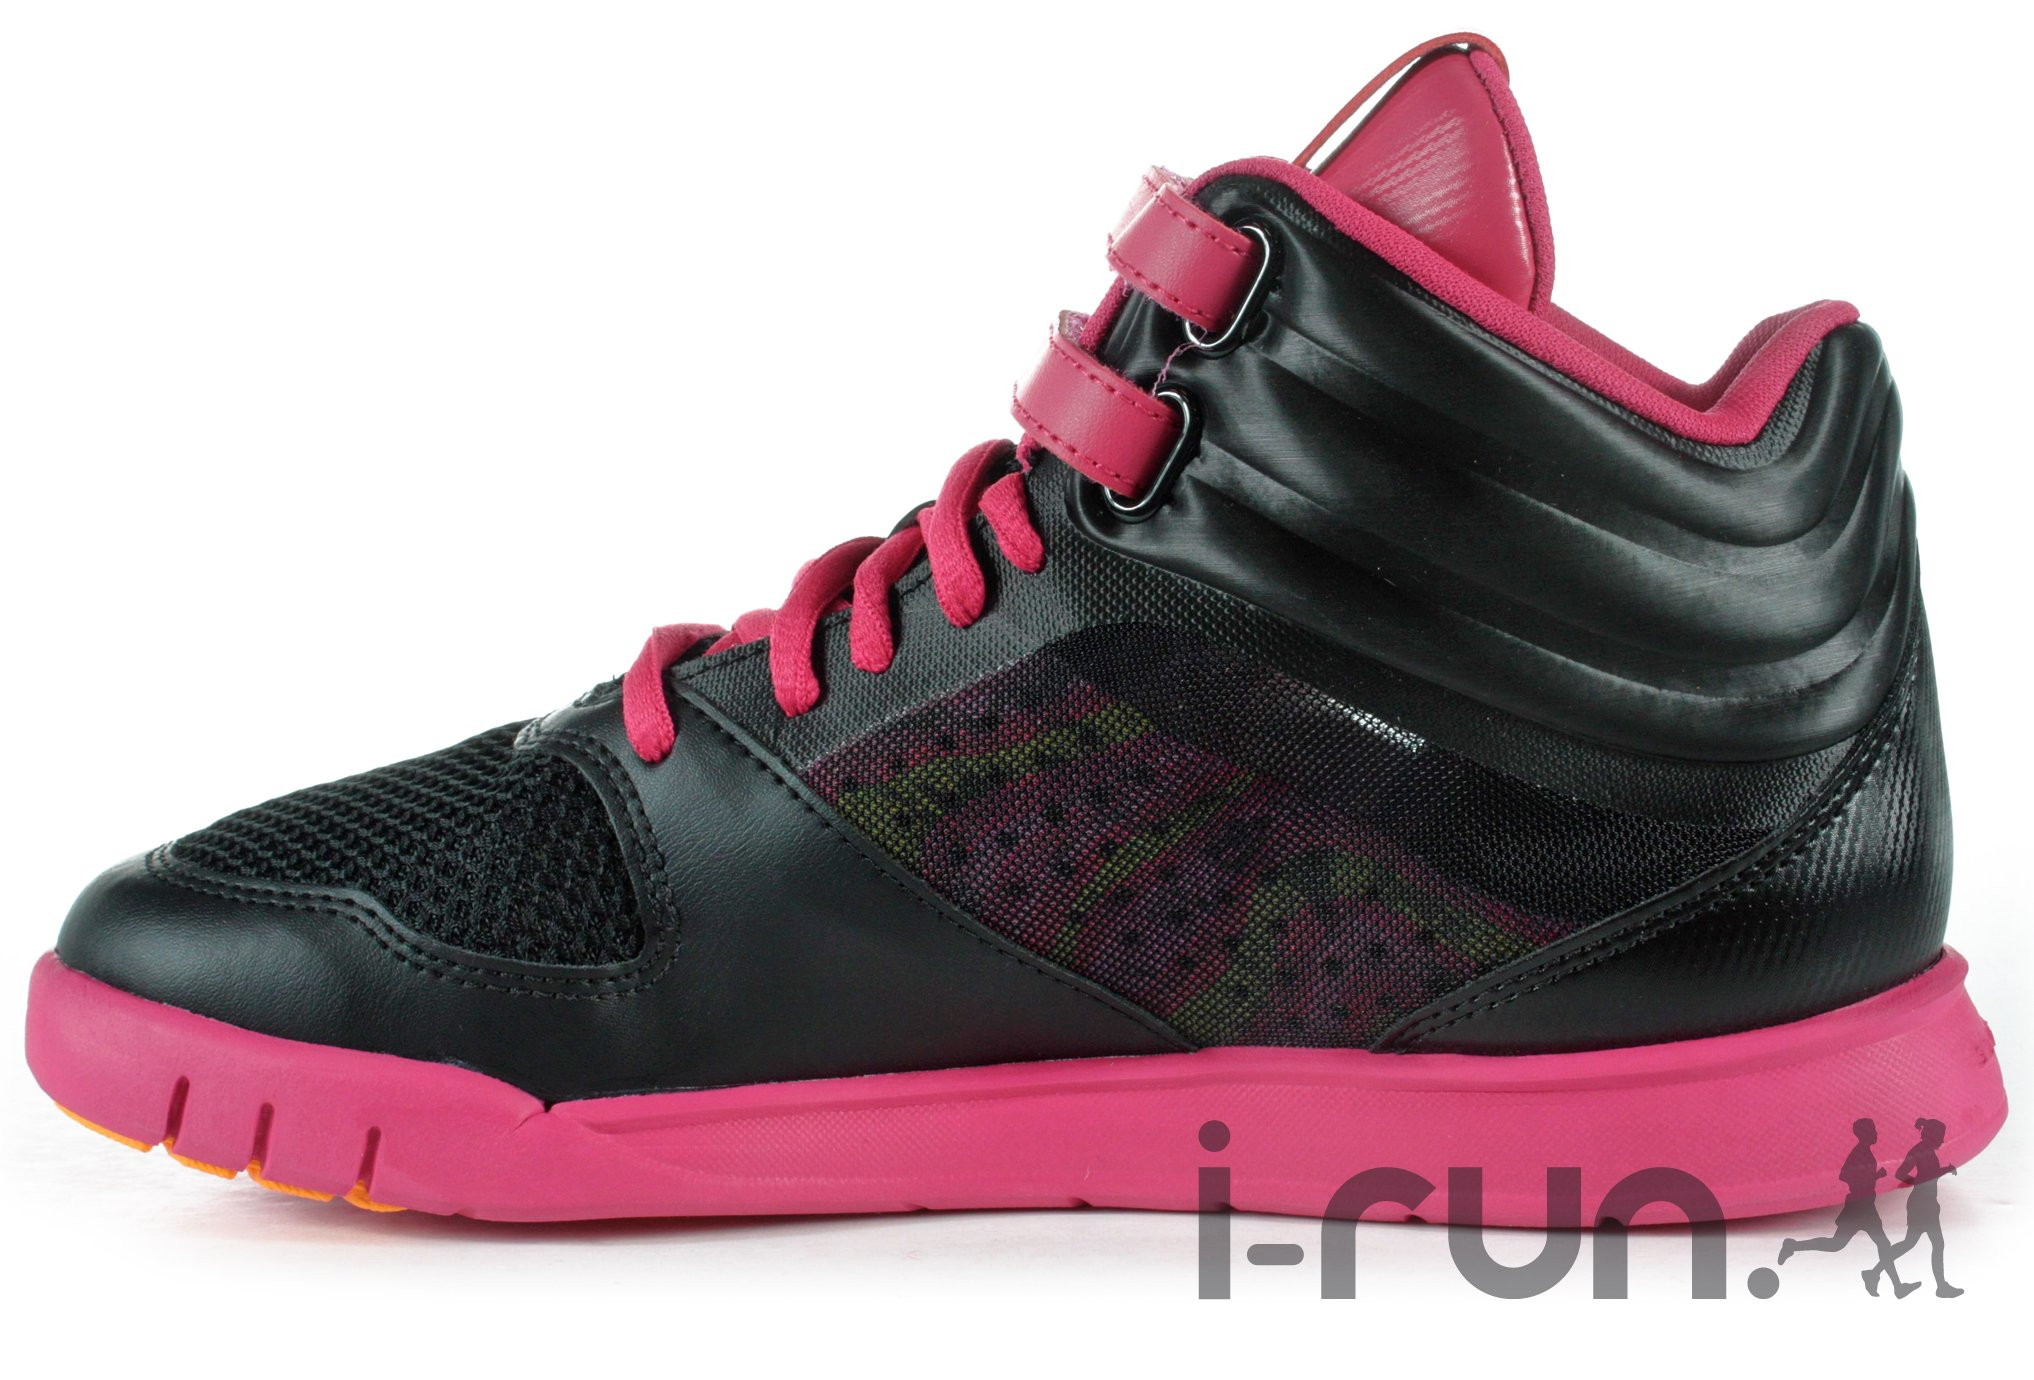 chaussures fitness reebok,Reebok Dance Urlead Mid chaussures